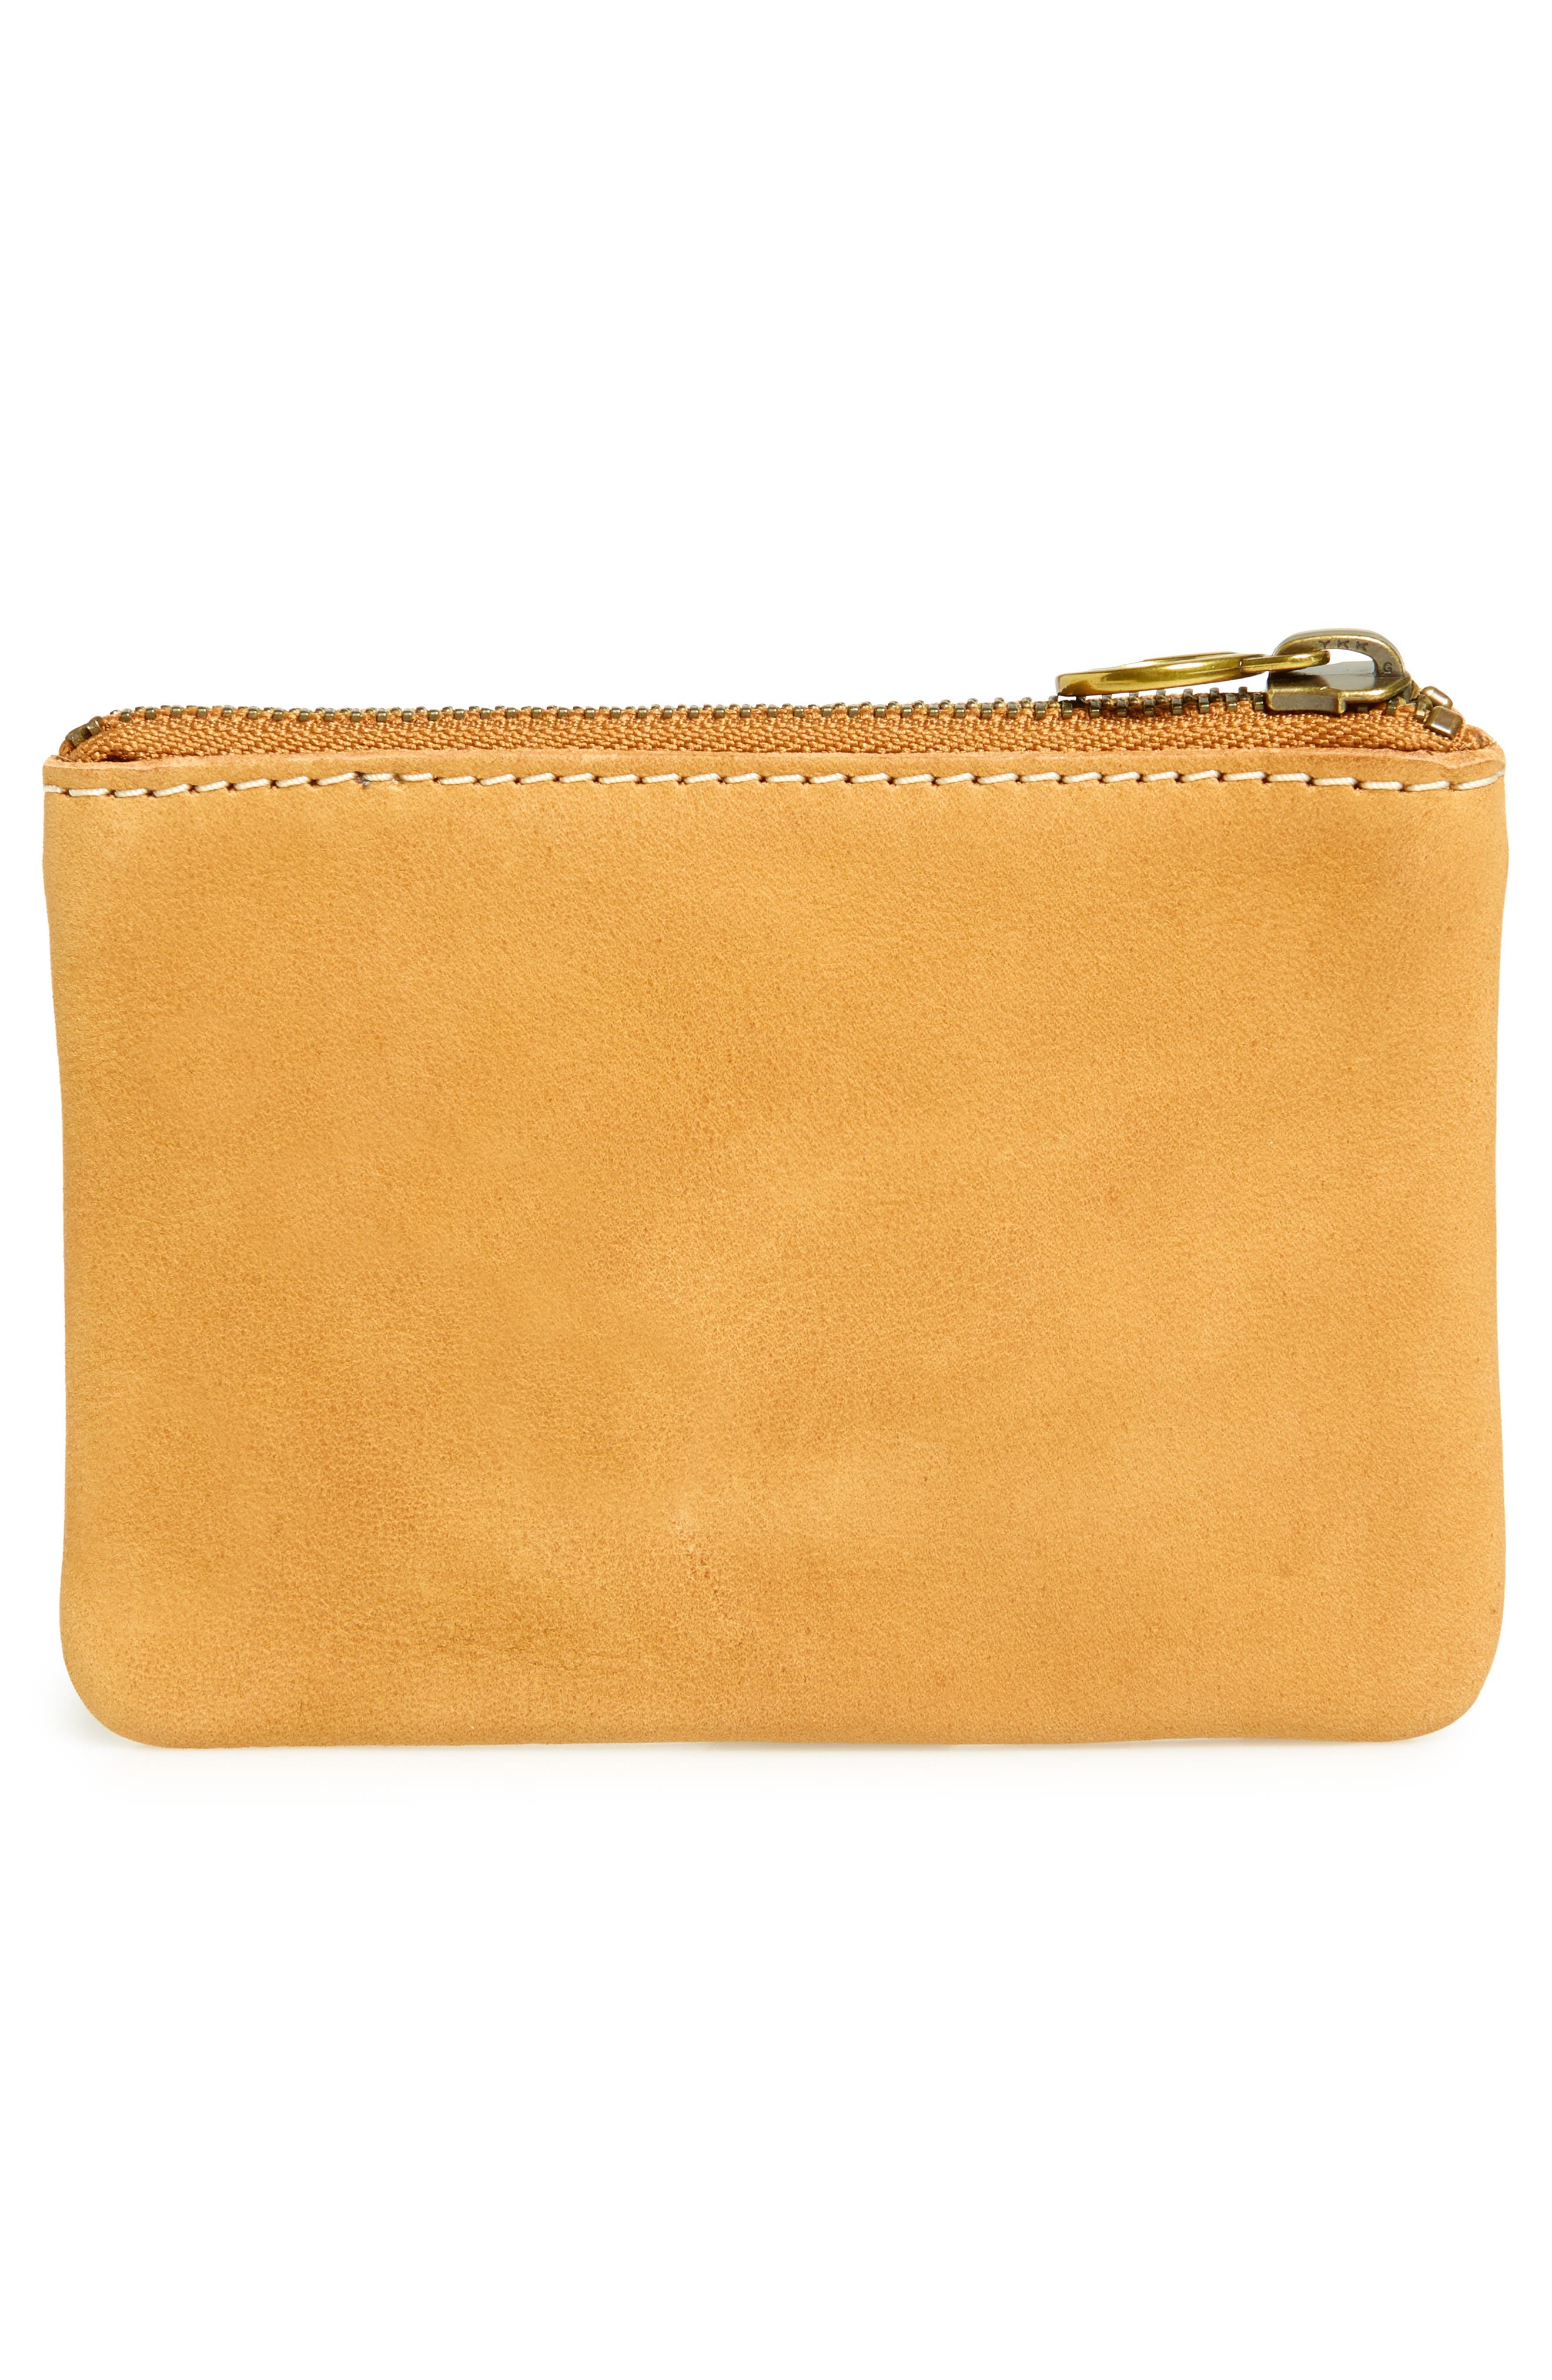 Sun Embroidered Small Flat Zip Pouch,                             Alternate thumbnail 3, color,                             200